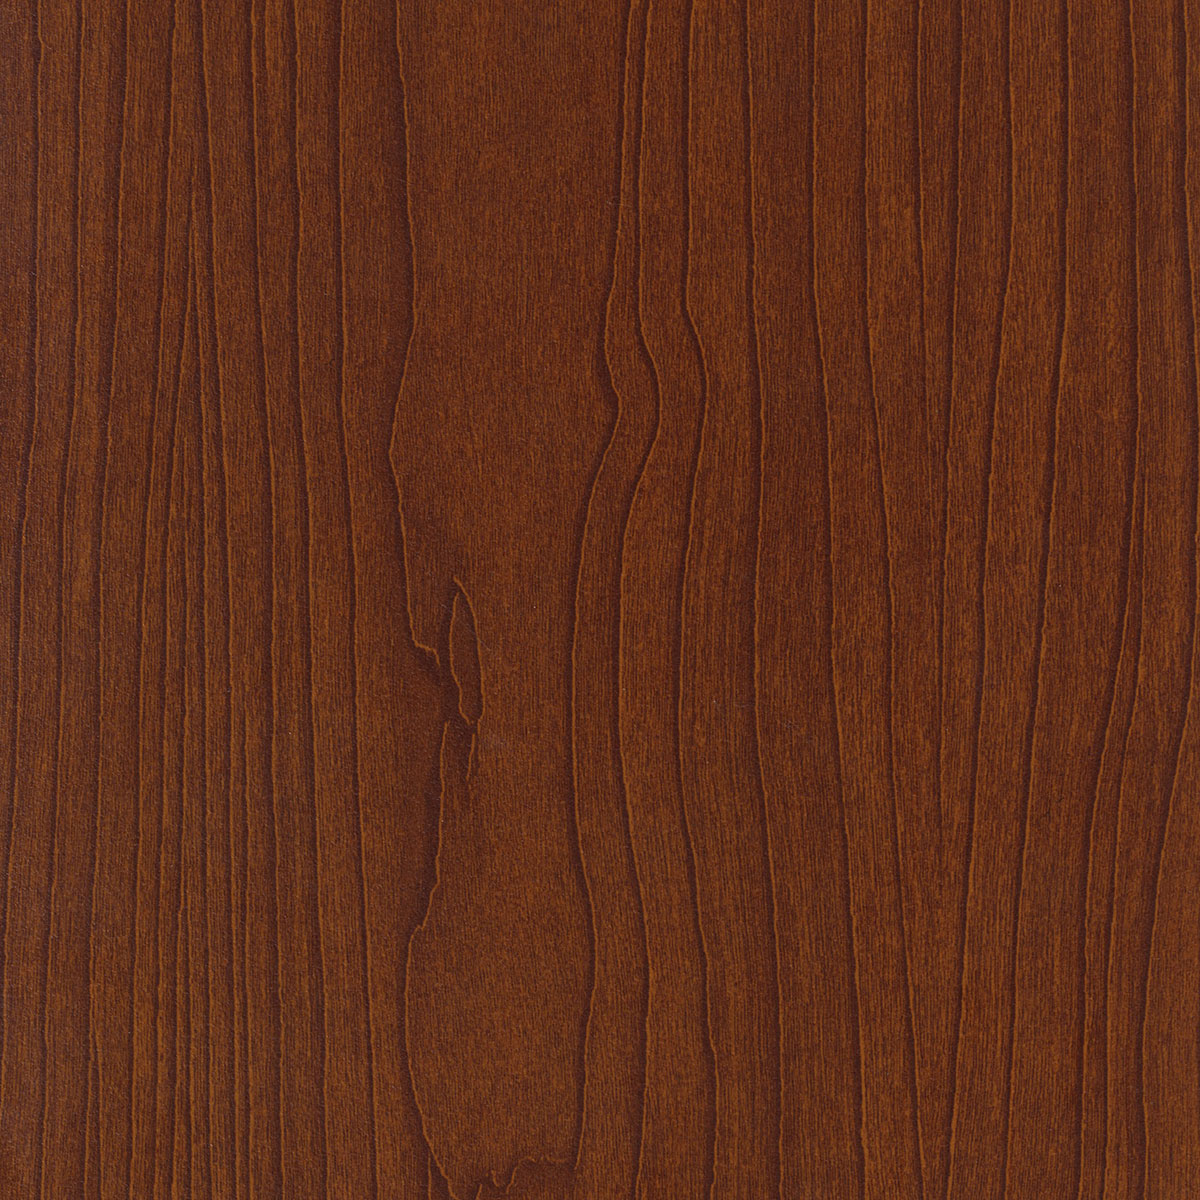 Knotwood Color: Iron Bark